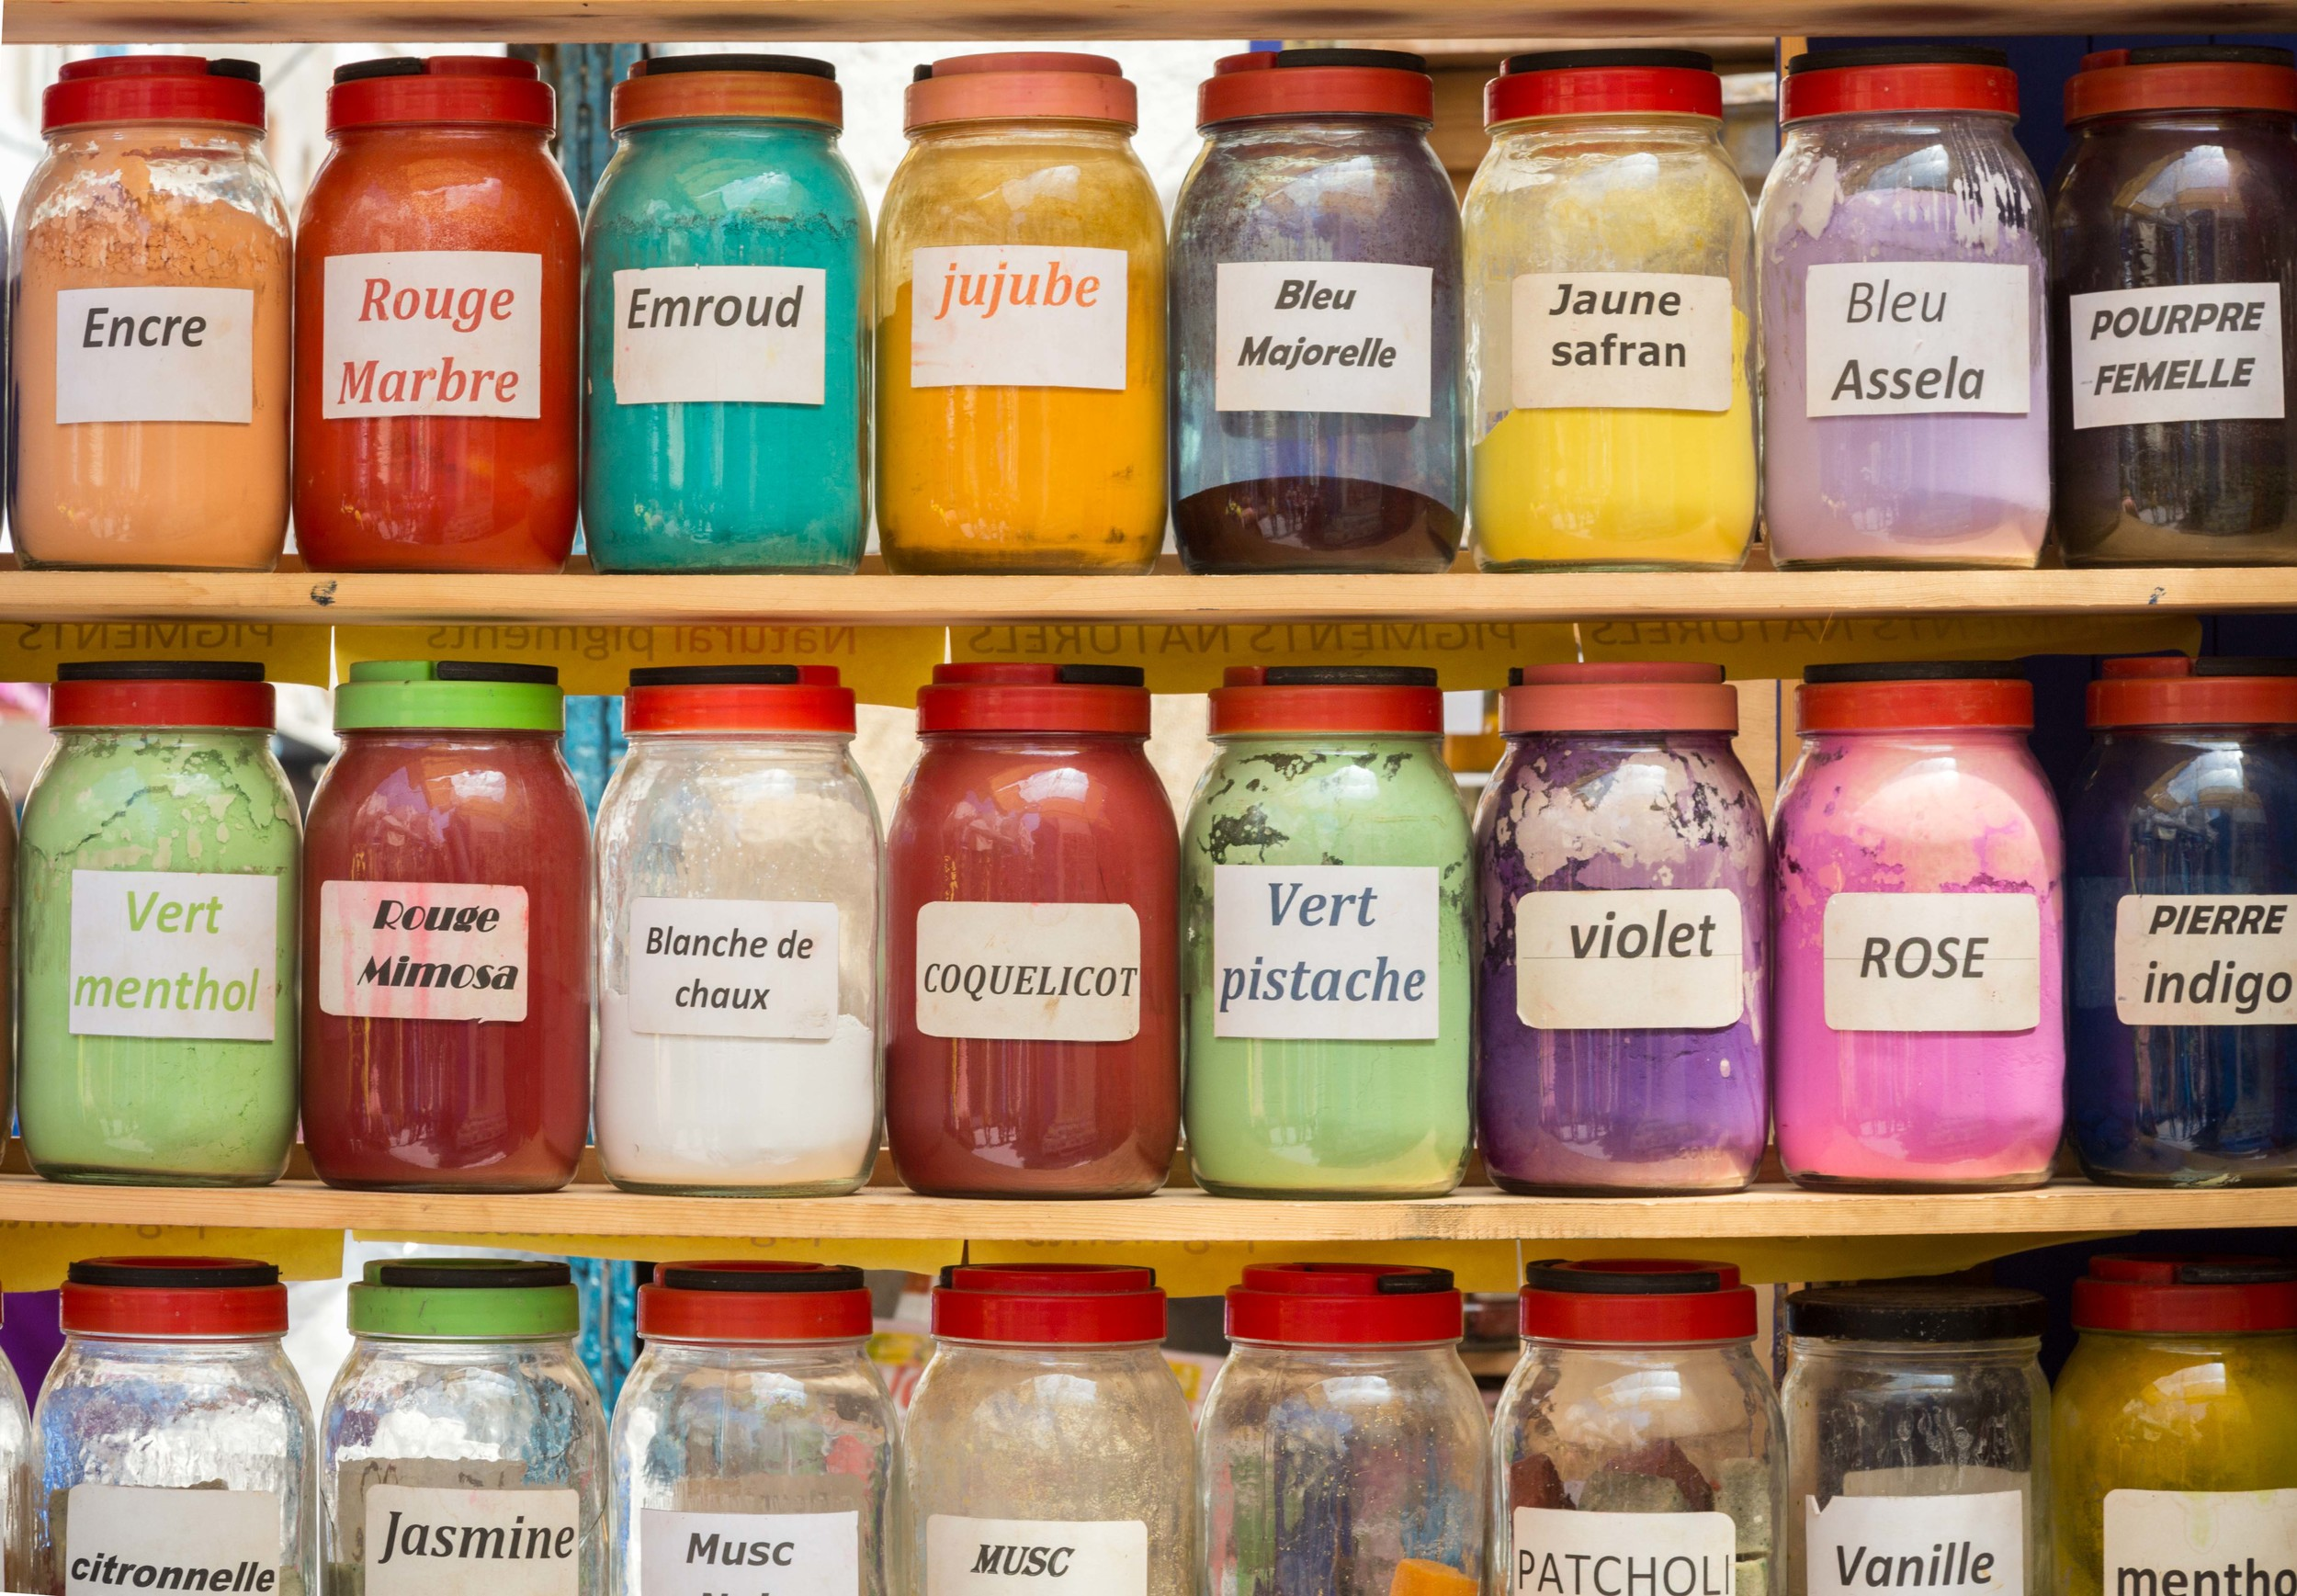 I wanted tobuy all these jars too. What do you think jujube is? I'm a terrible blogger. I should have asked the shop keeper for you.